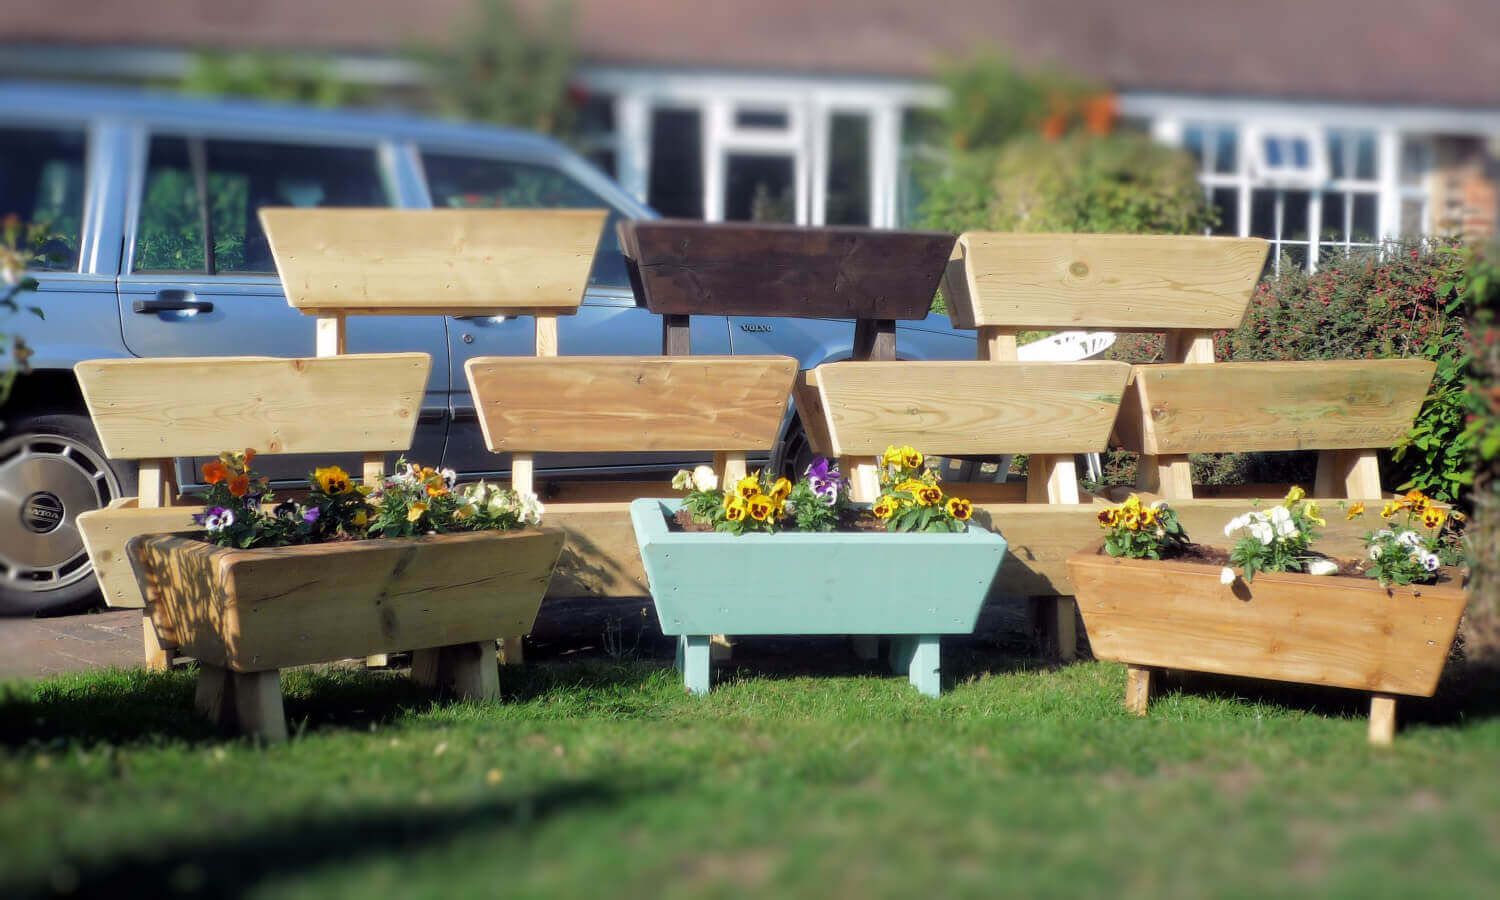 Photo of some of the Wooden Garden Planters that HHLC are selling to raise funds for our charity.